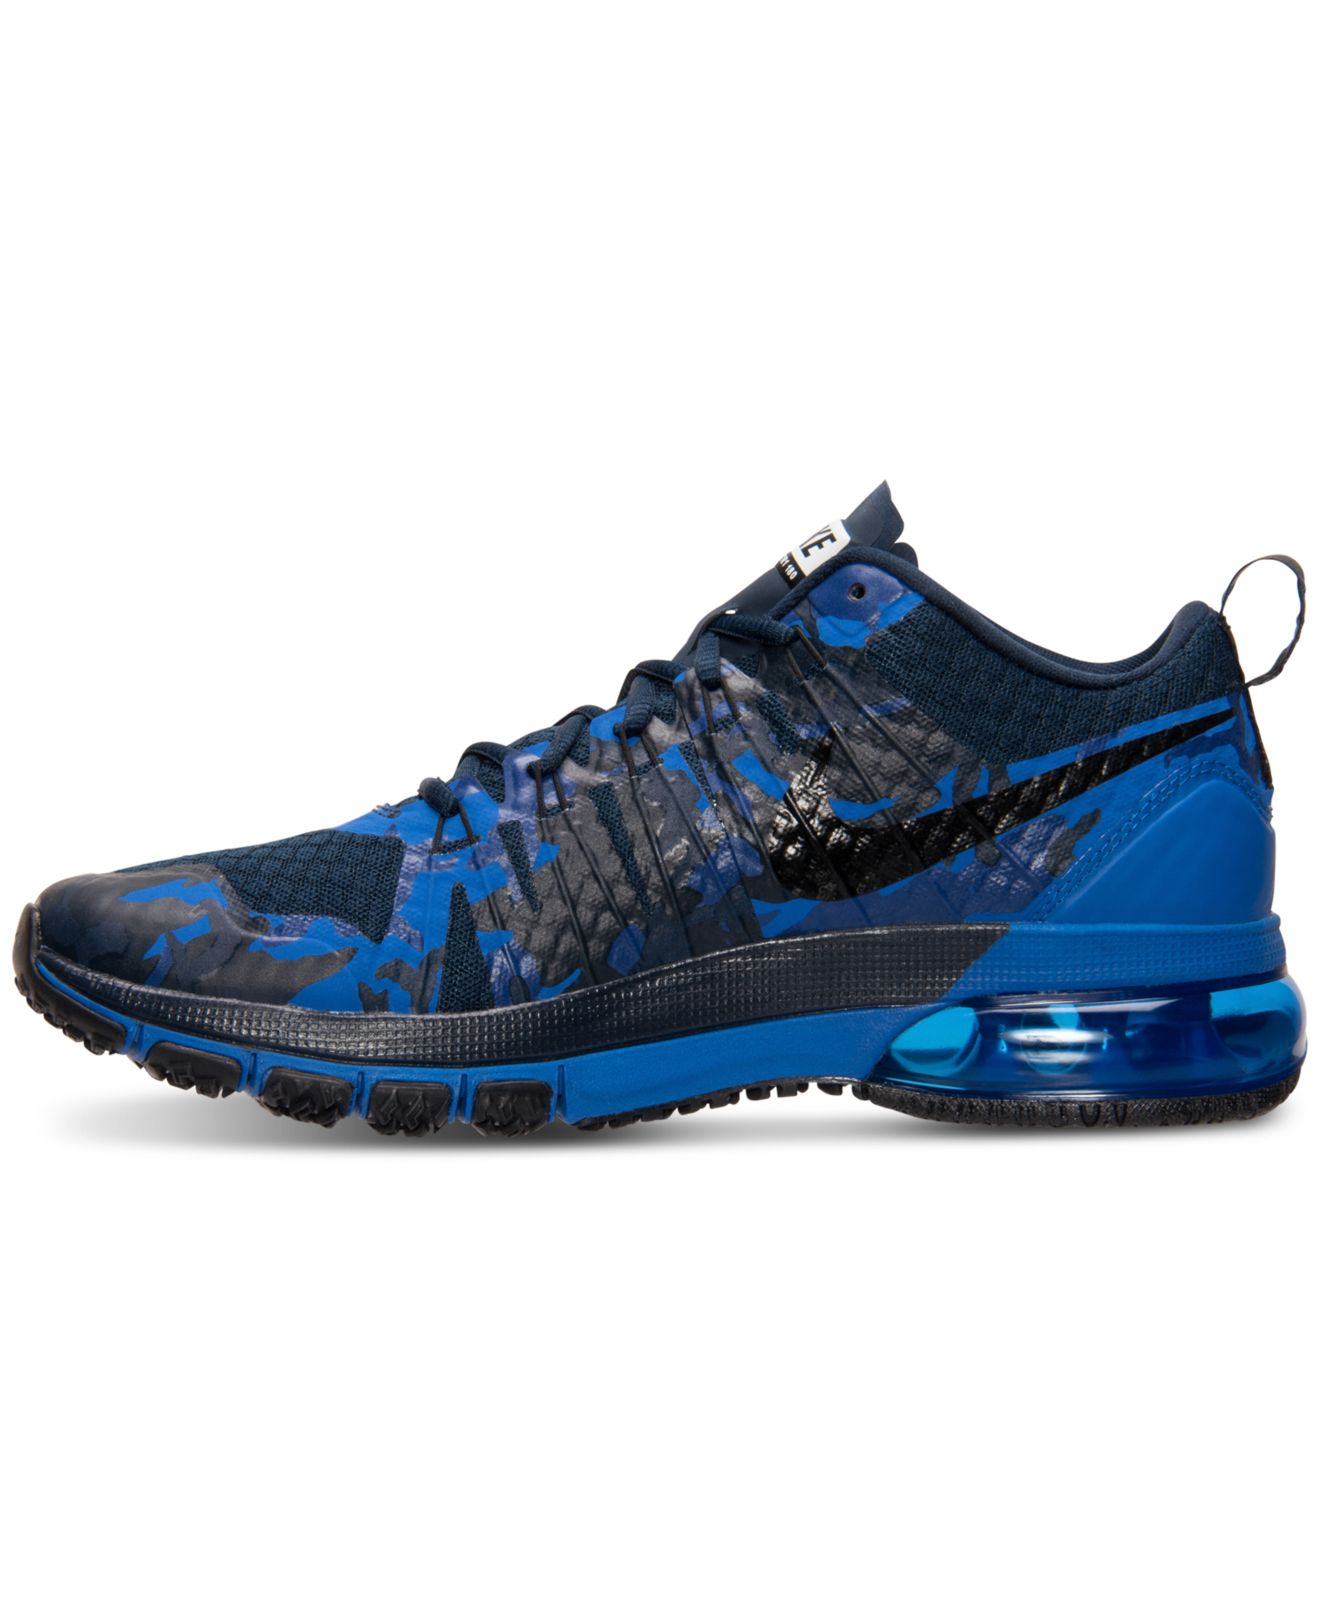 uk availability eb3ad cadae Nike Men s Air Max Tr180 Amp Training Sneakers From Finish Line in ...